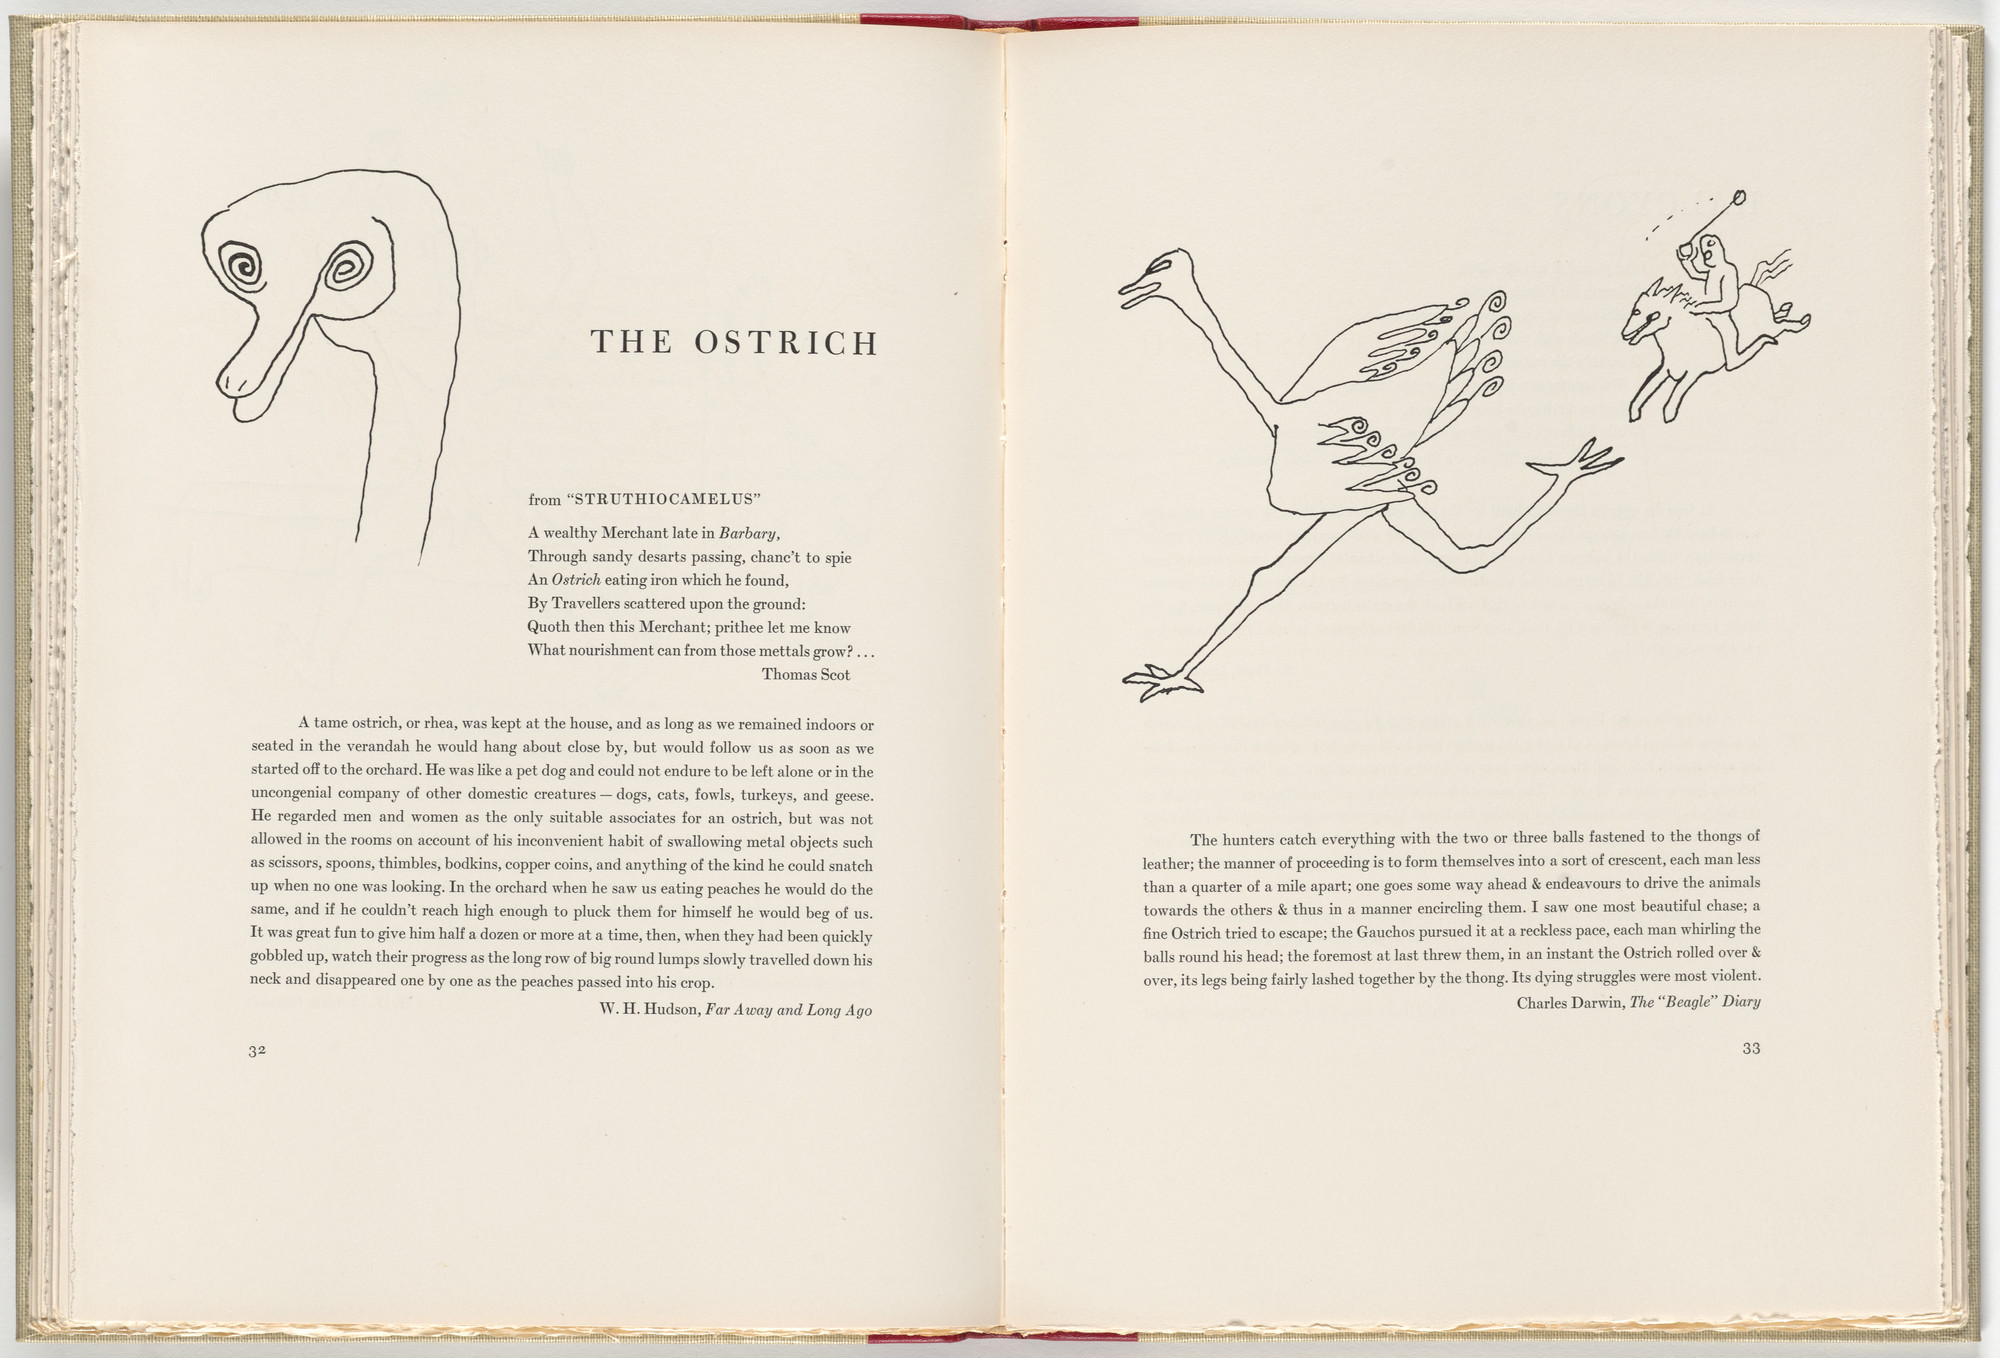 Alexander Calder. In-text plate (page 33) from A Bestiary. 1955